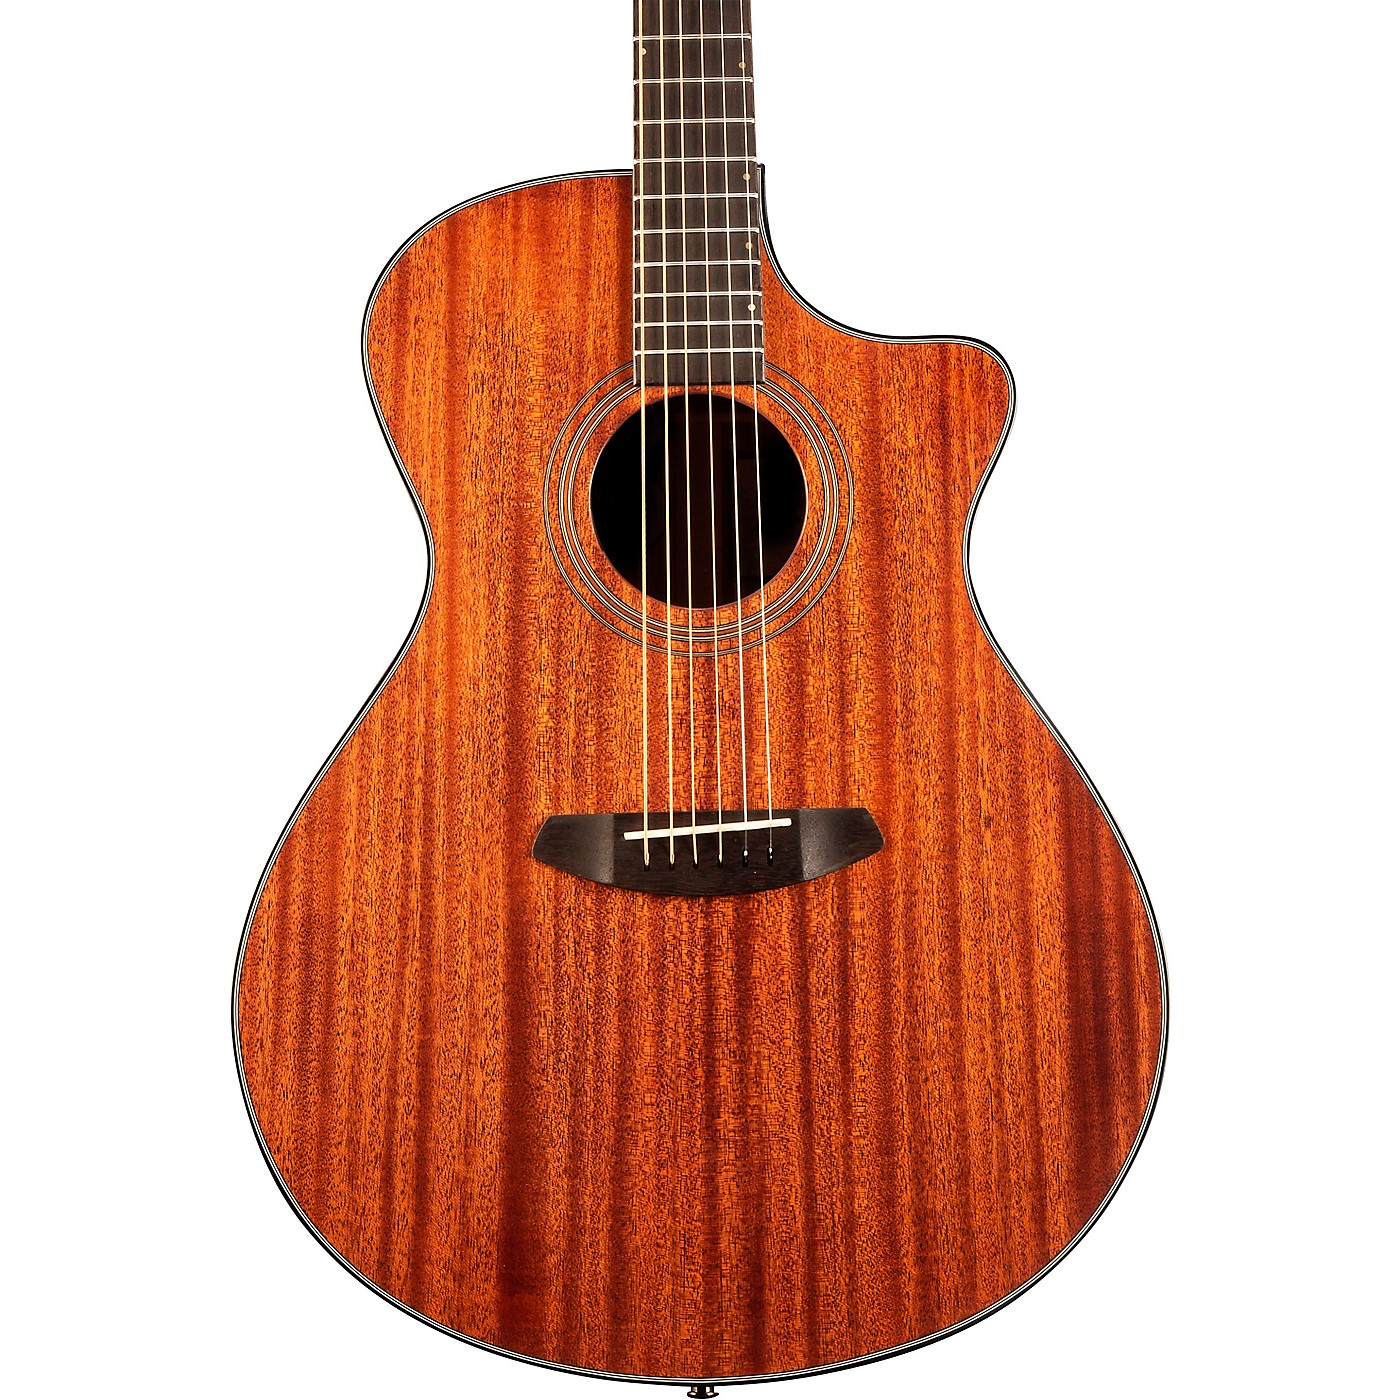 Breedlove Organic Collection Wildwood Concerto Cutaway CE Acoustic-Electric Guitar thumbnail